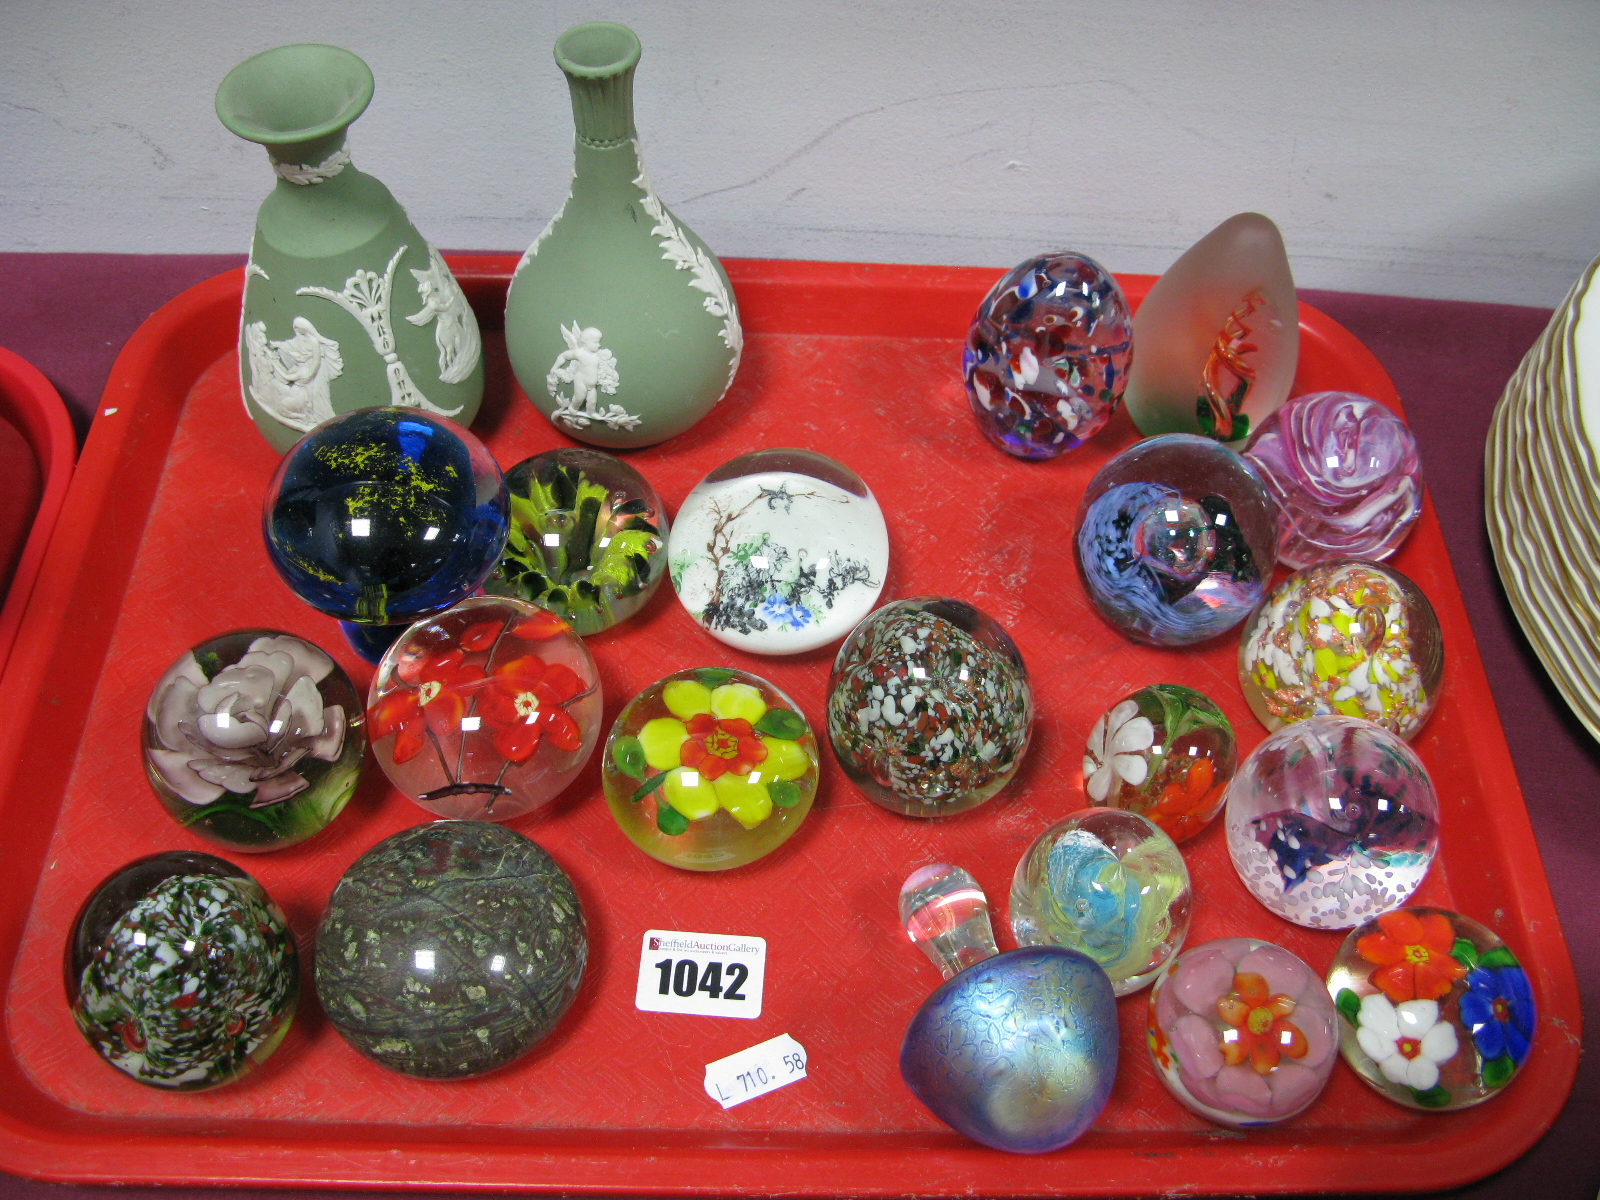 Lot 1042 - Glass Paperweights, to include, iridescent mushroom, ovoid, mottled, no visible markers names, two